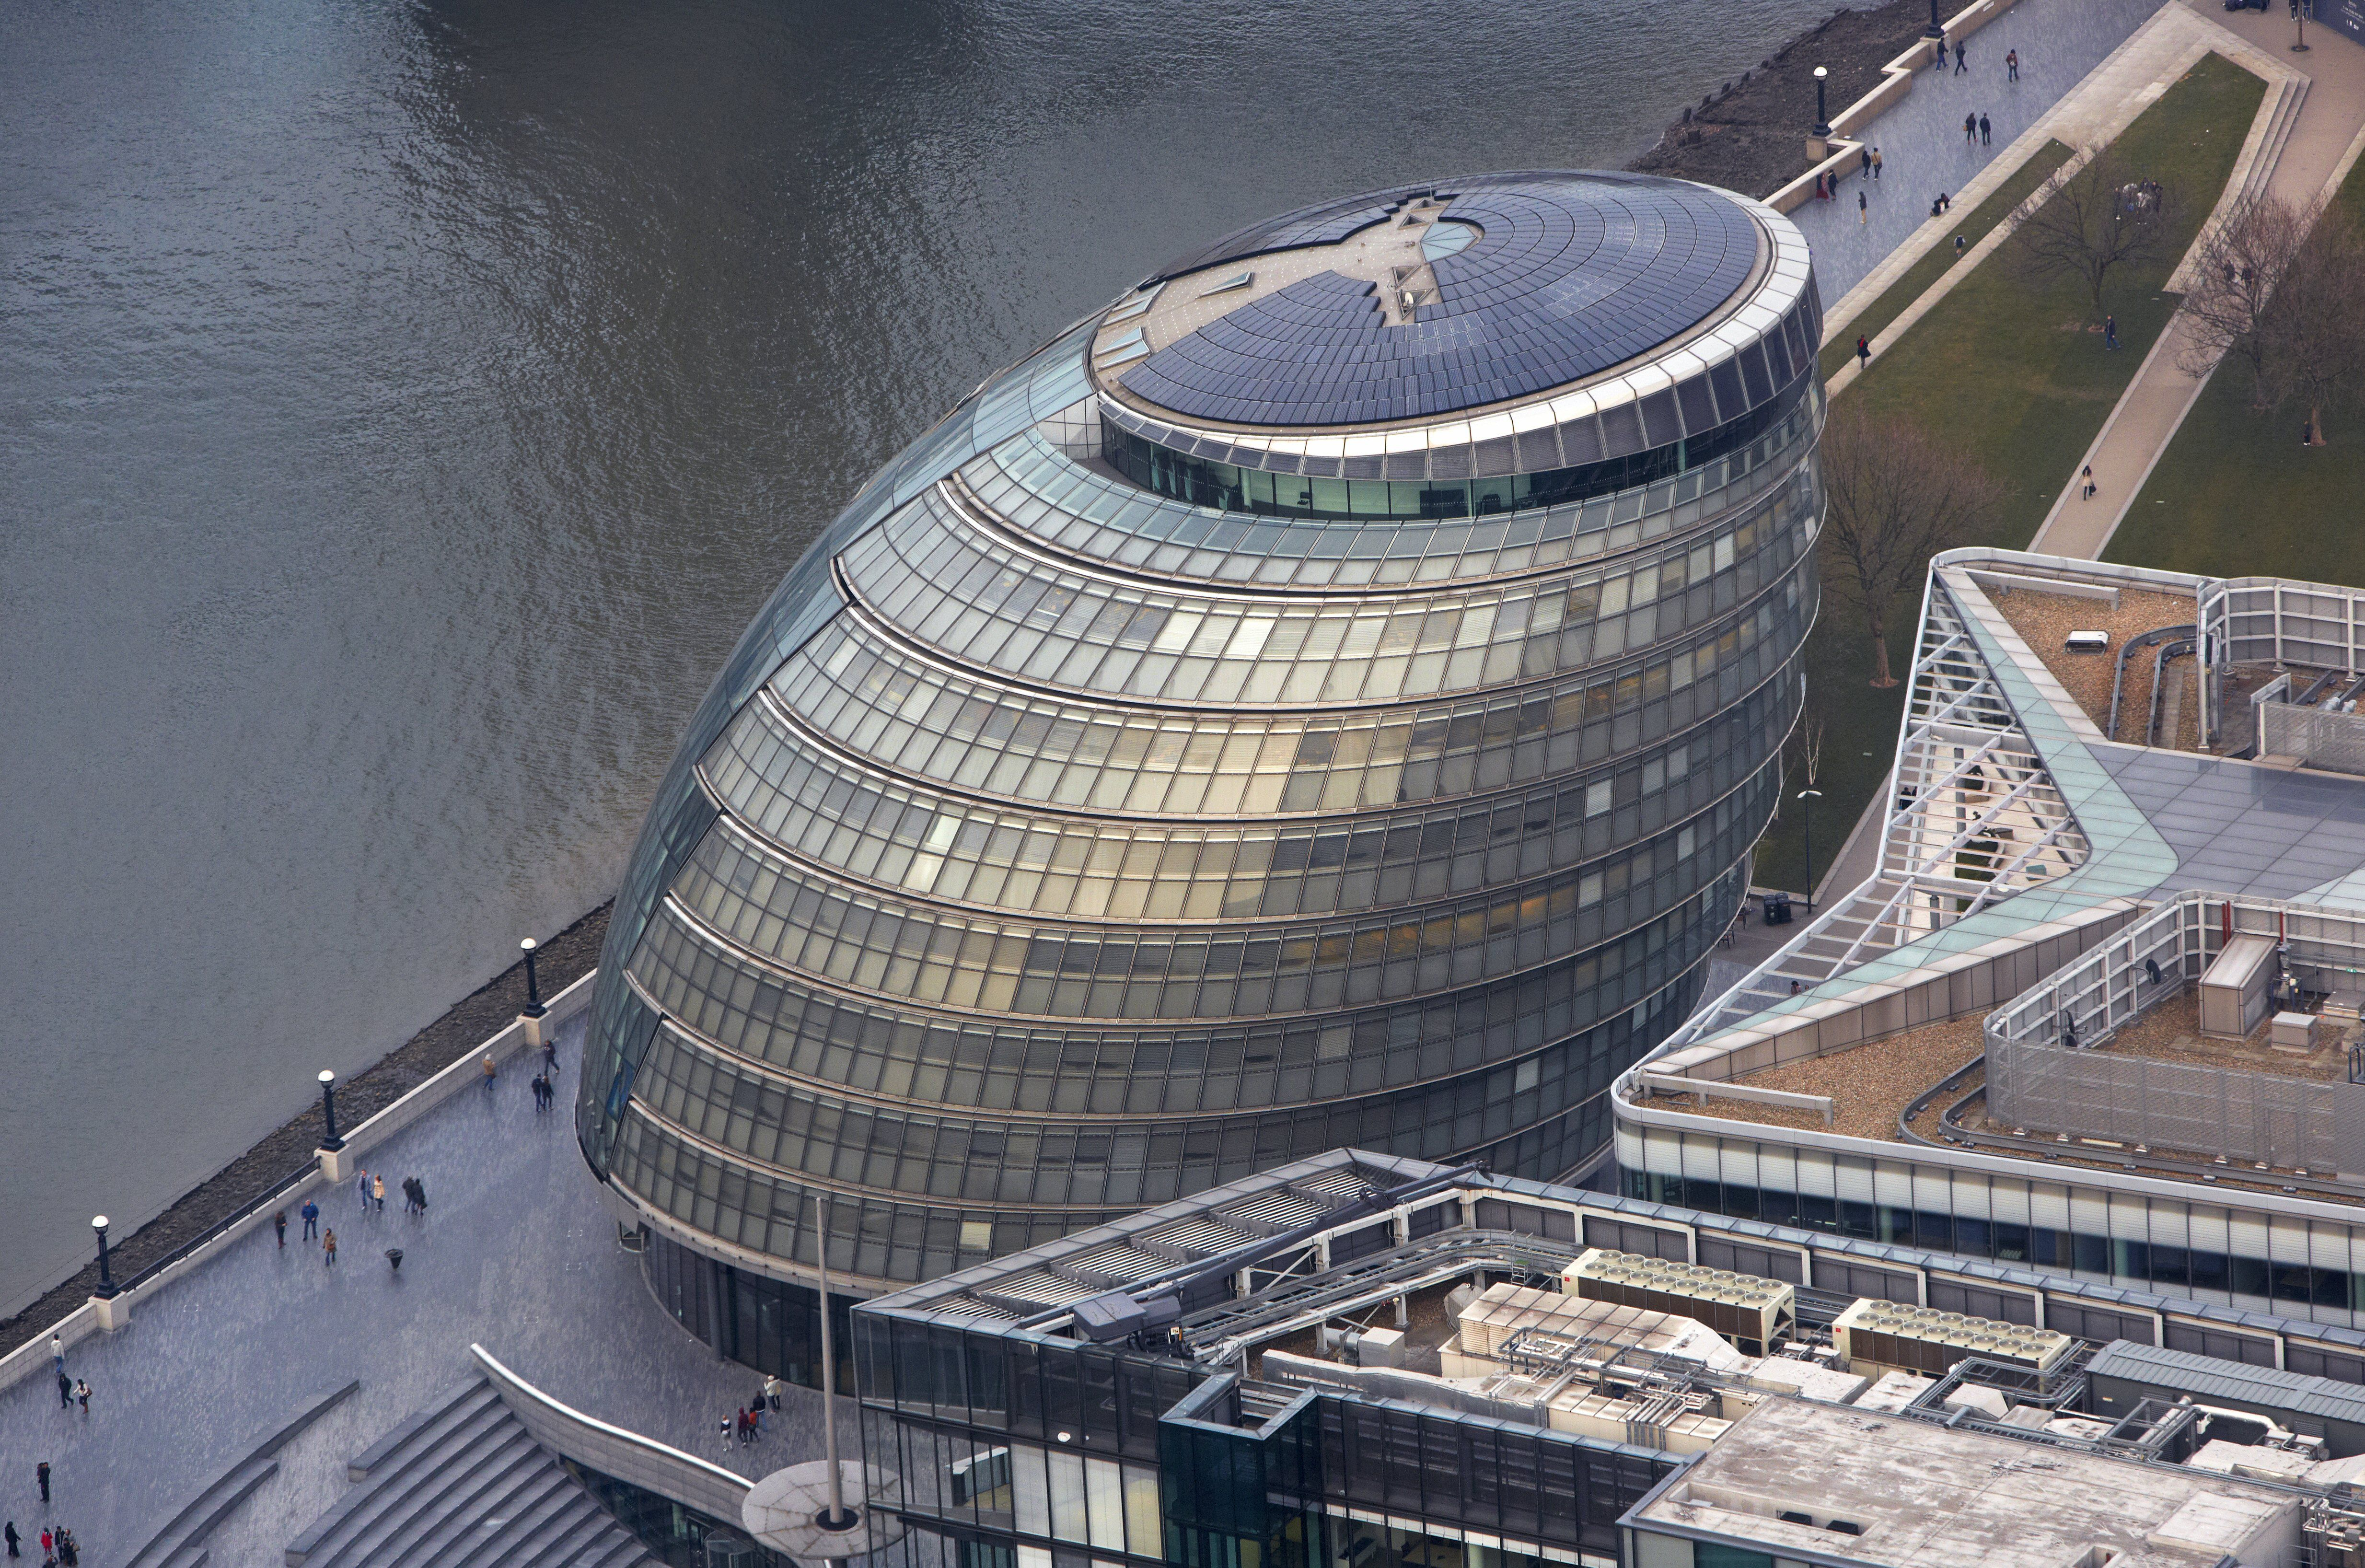 Elevated view of slanted Slinky-like building near a river